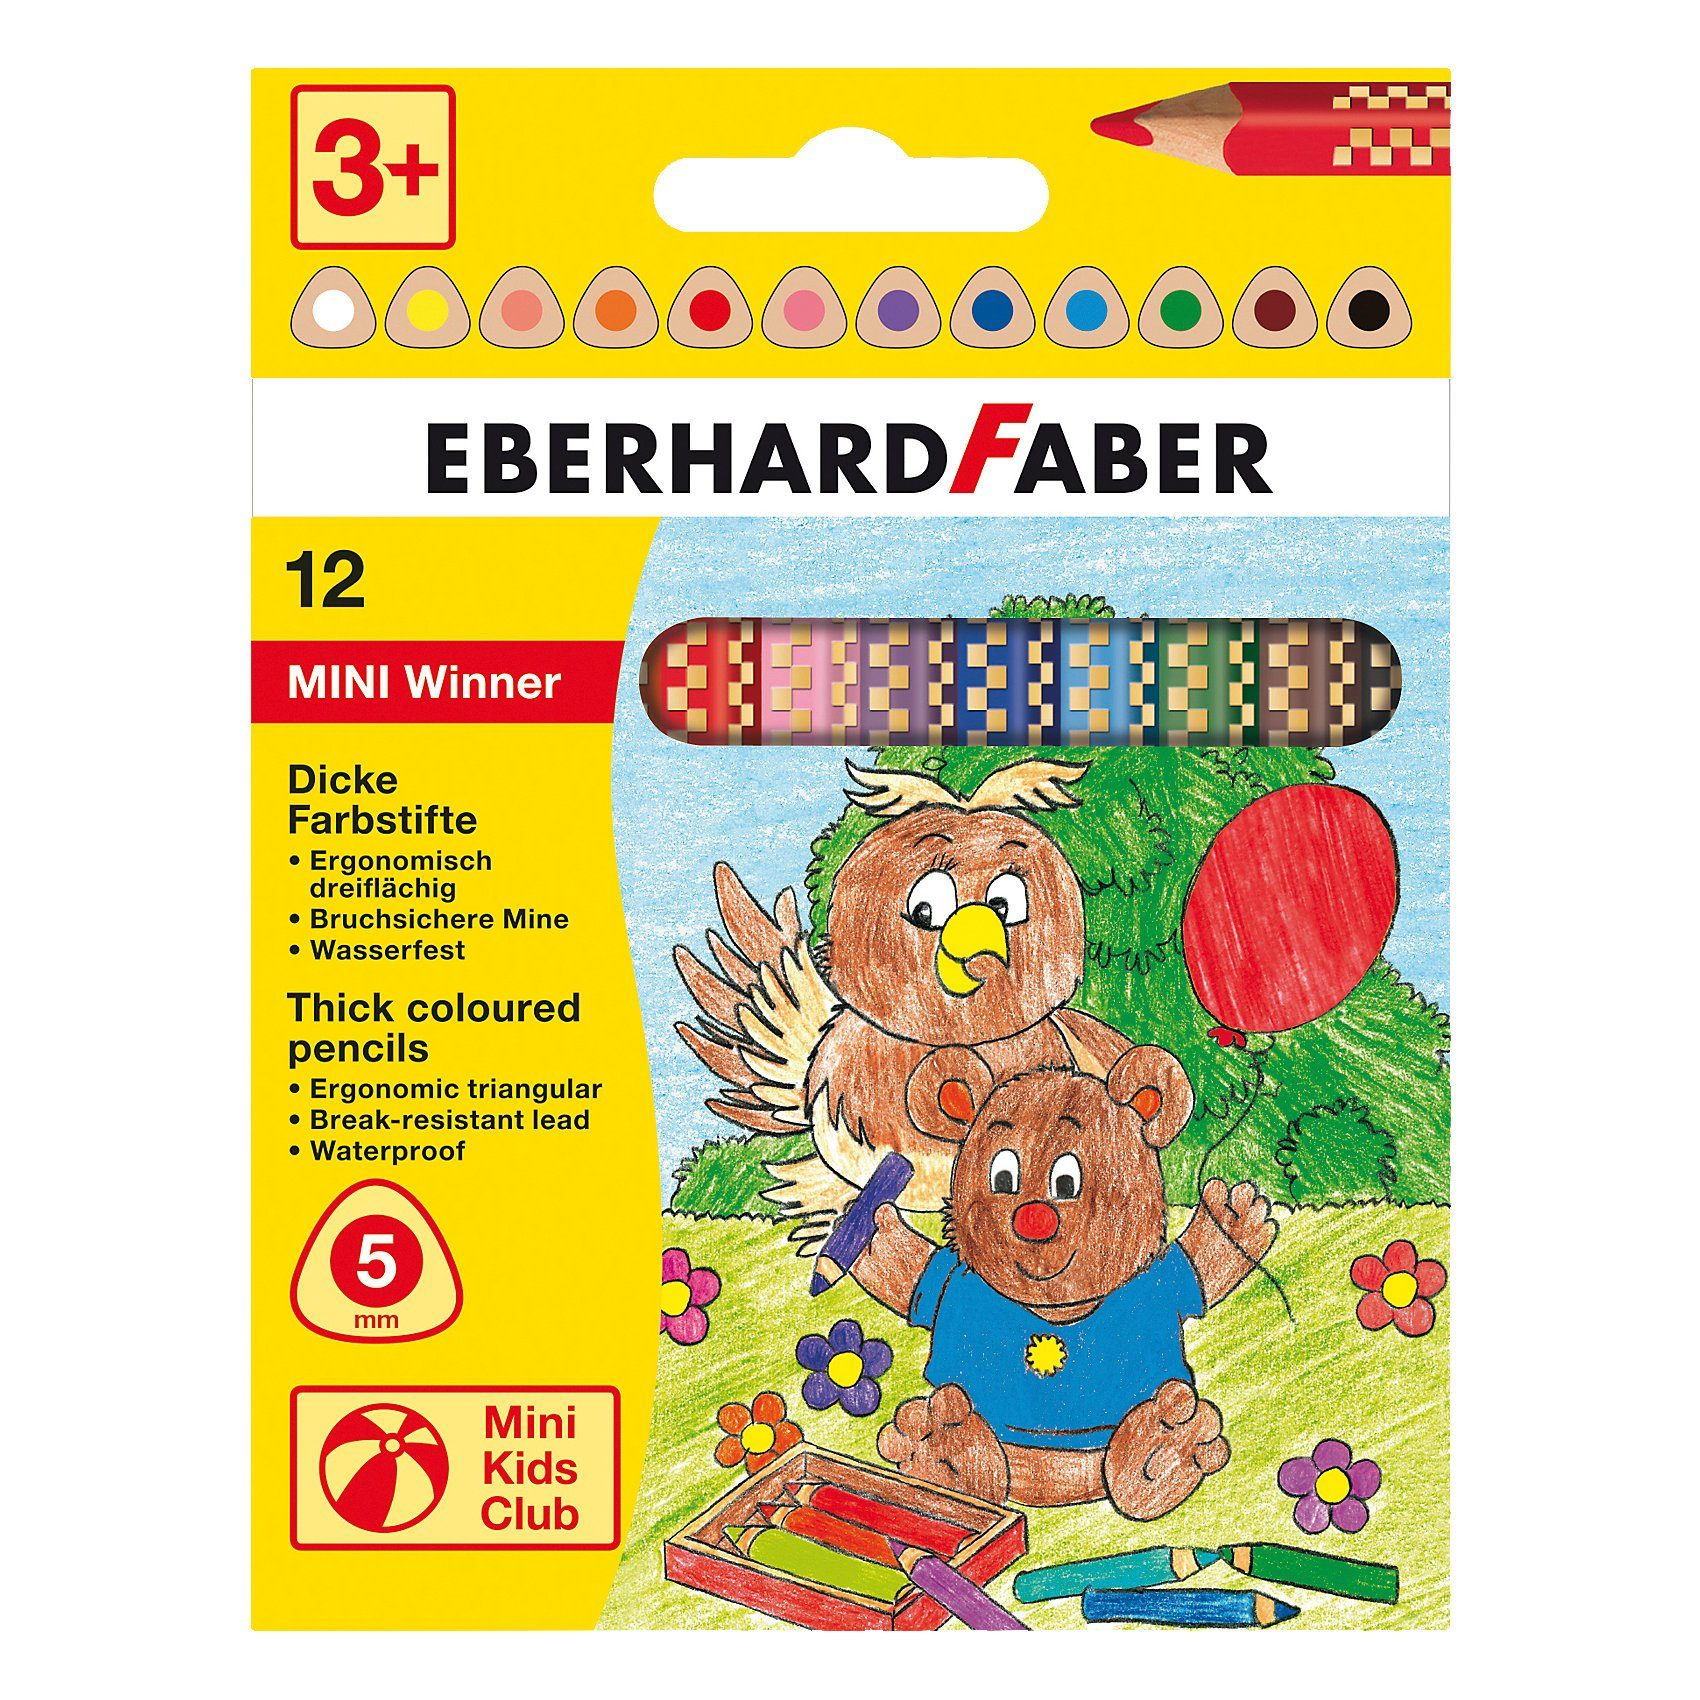 Eberhard Faber Mini Kids Jumbo-Buntstifte Mini Winner, 12 Farben